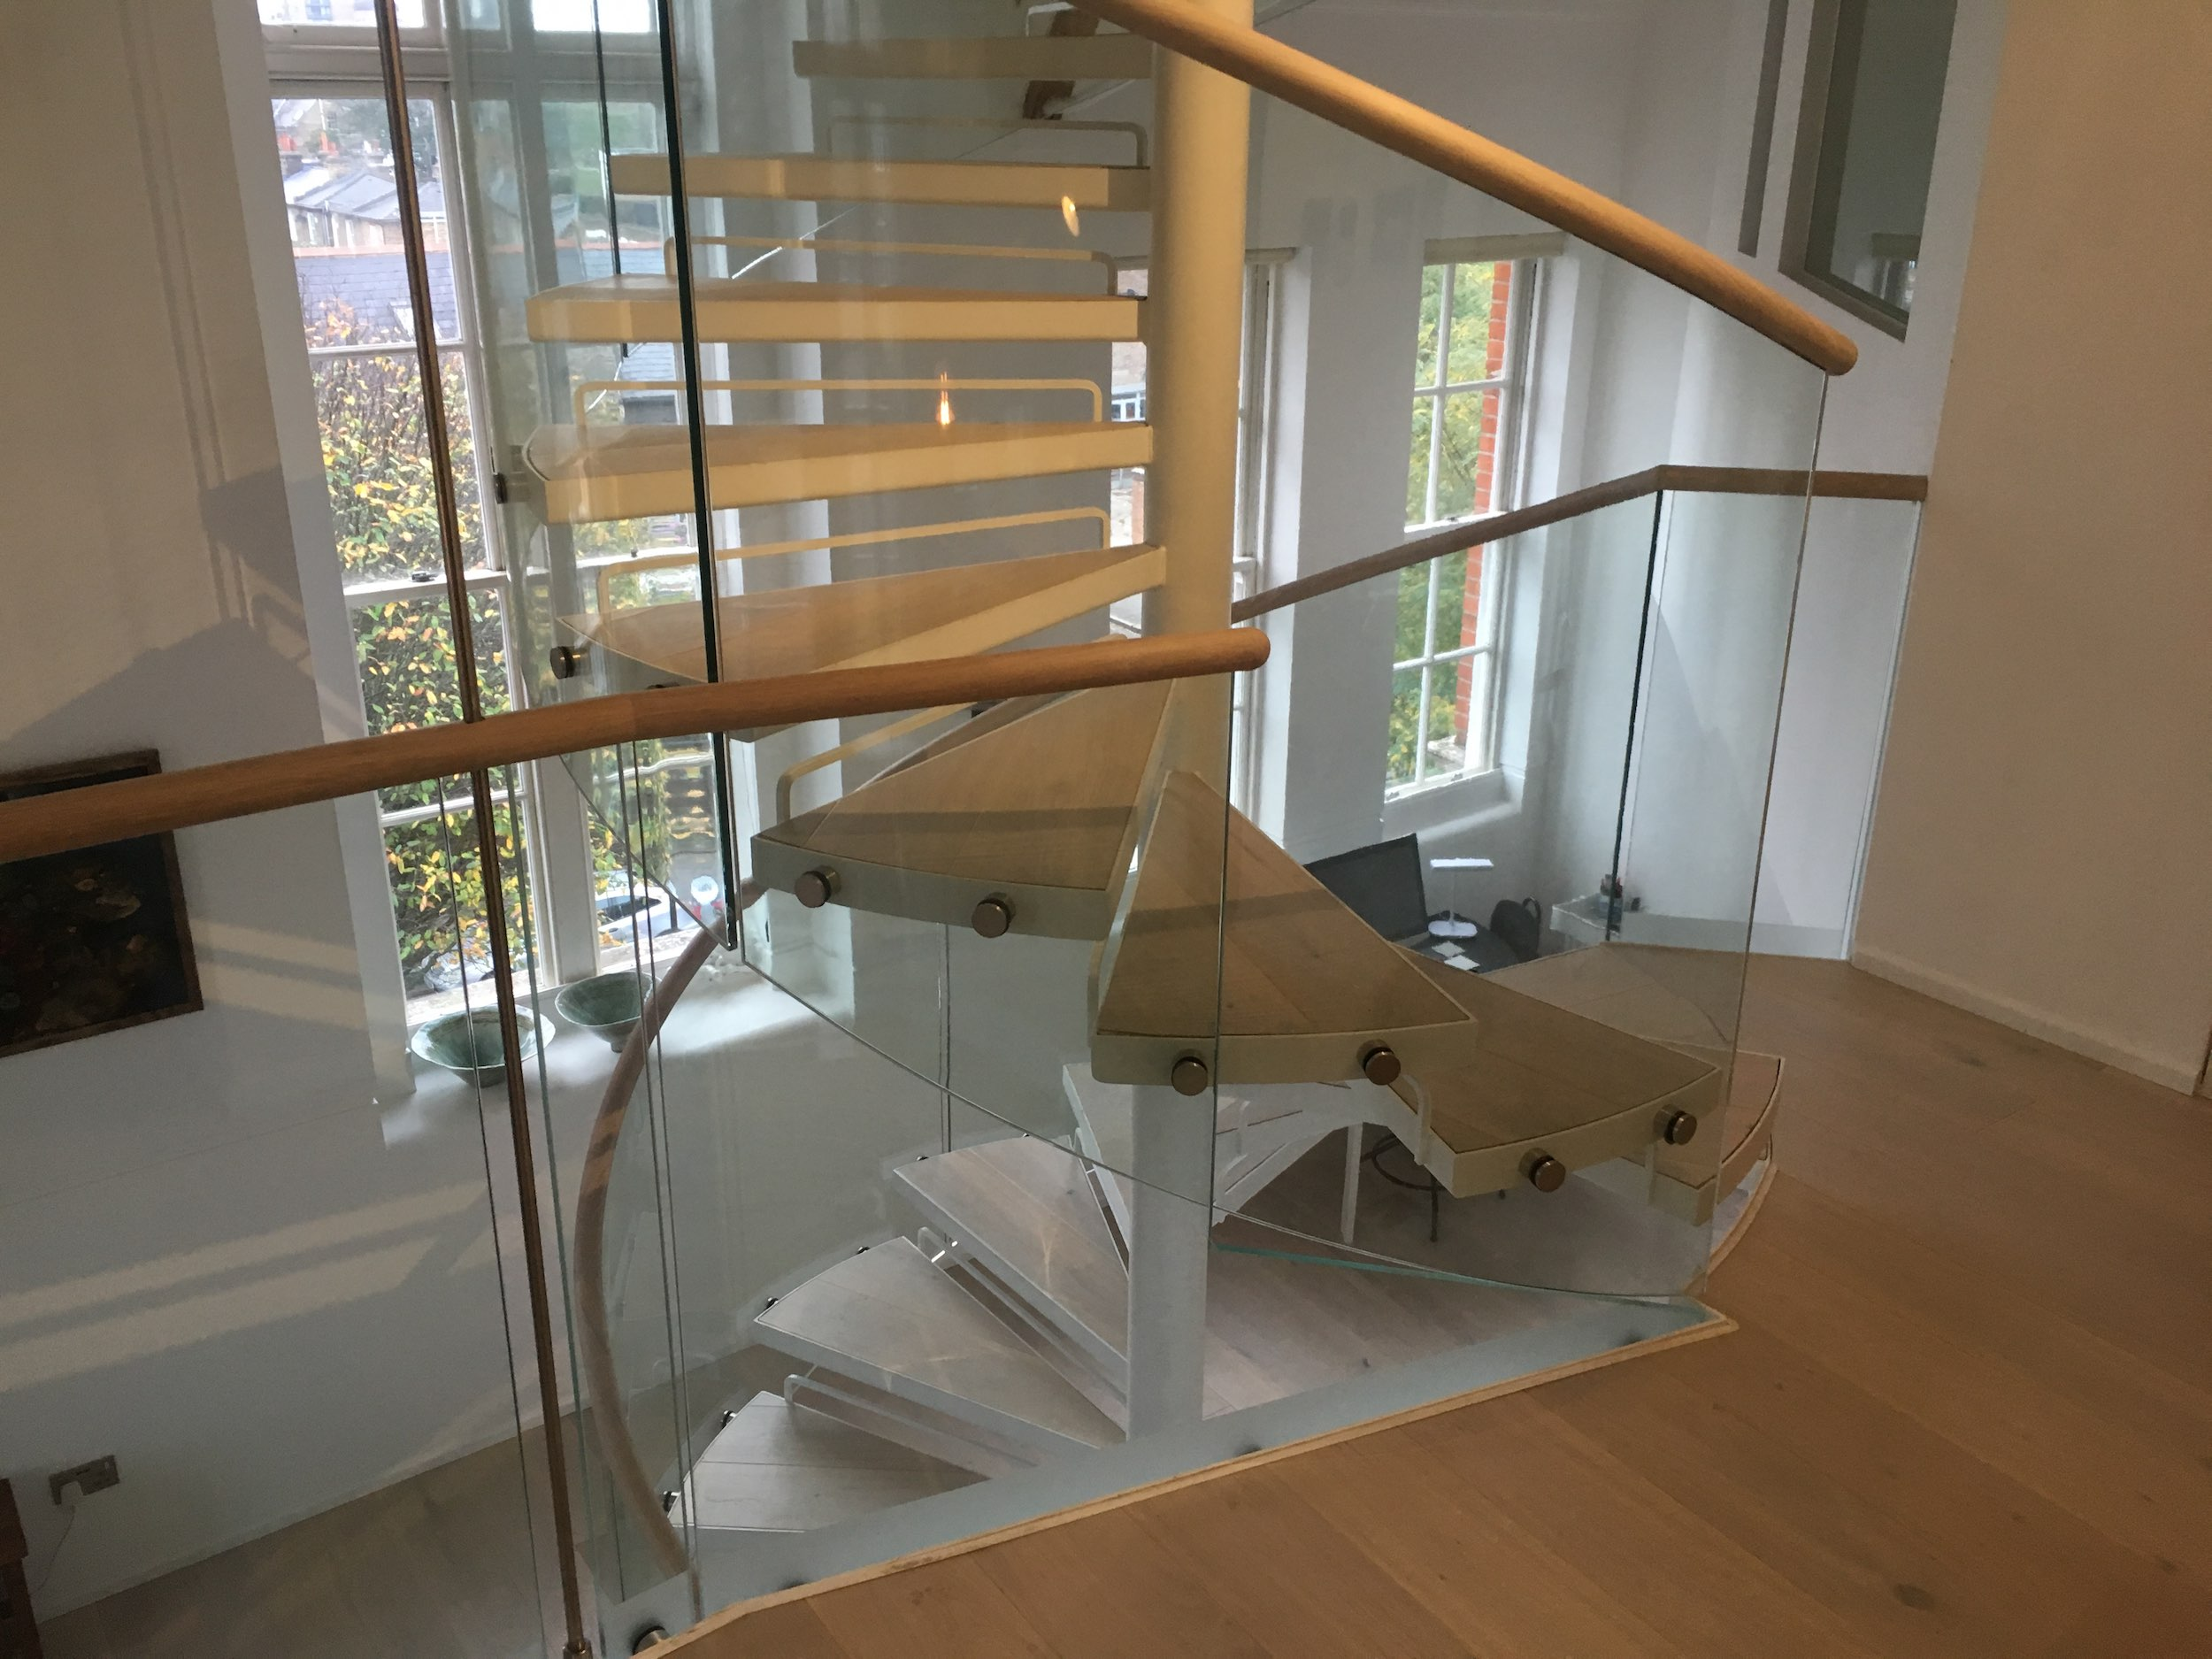 This spiral staircase is made of steel, reclaimed wood, and glass